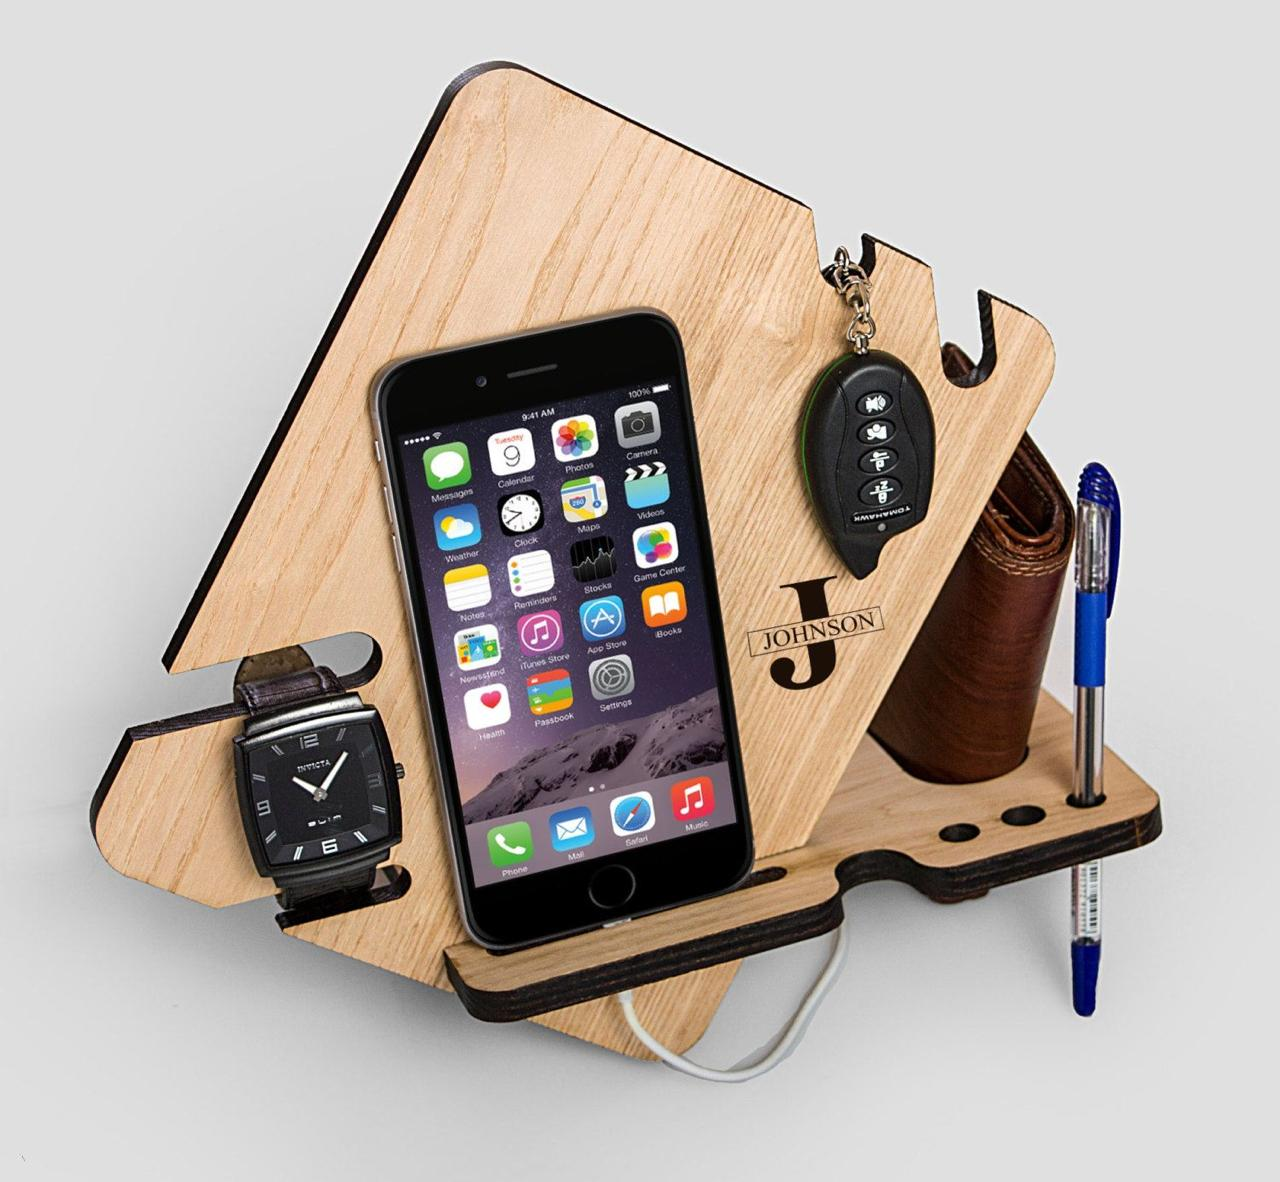 Laser Cut Wood Phone Docking Station With Key Holder Wallet Stand Watch Organizer Free CDR Vectors Art